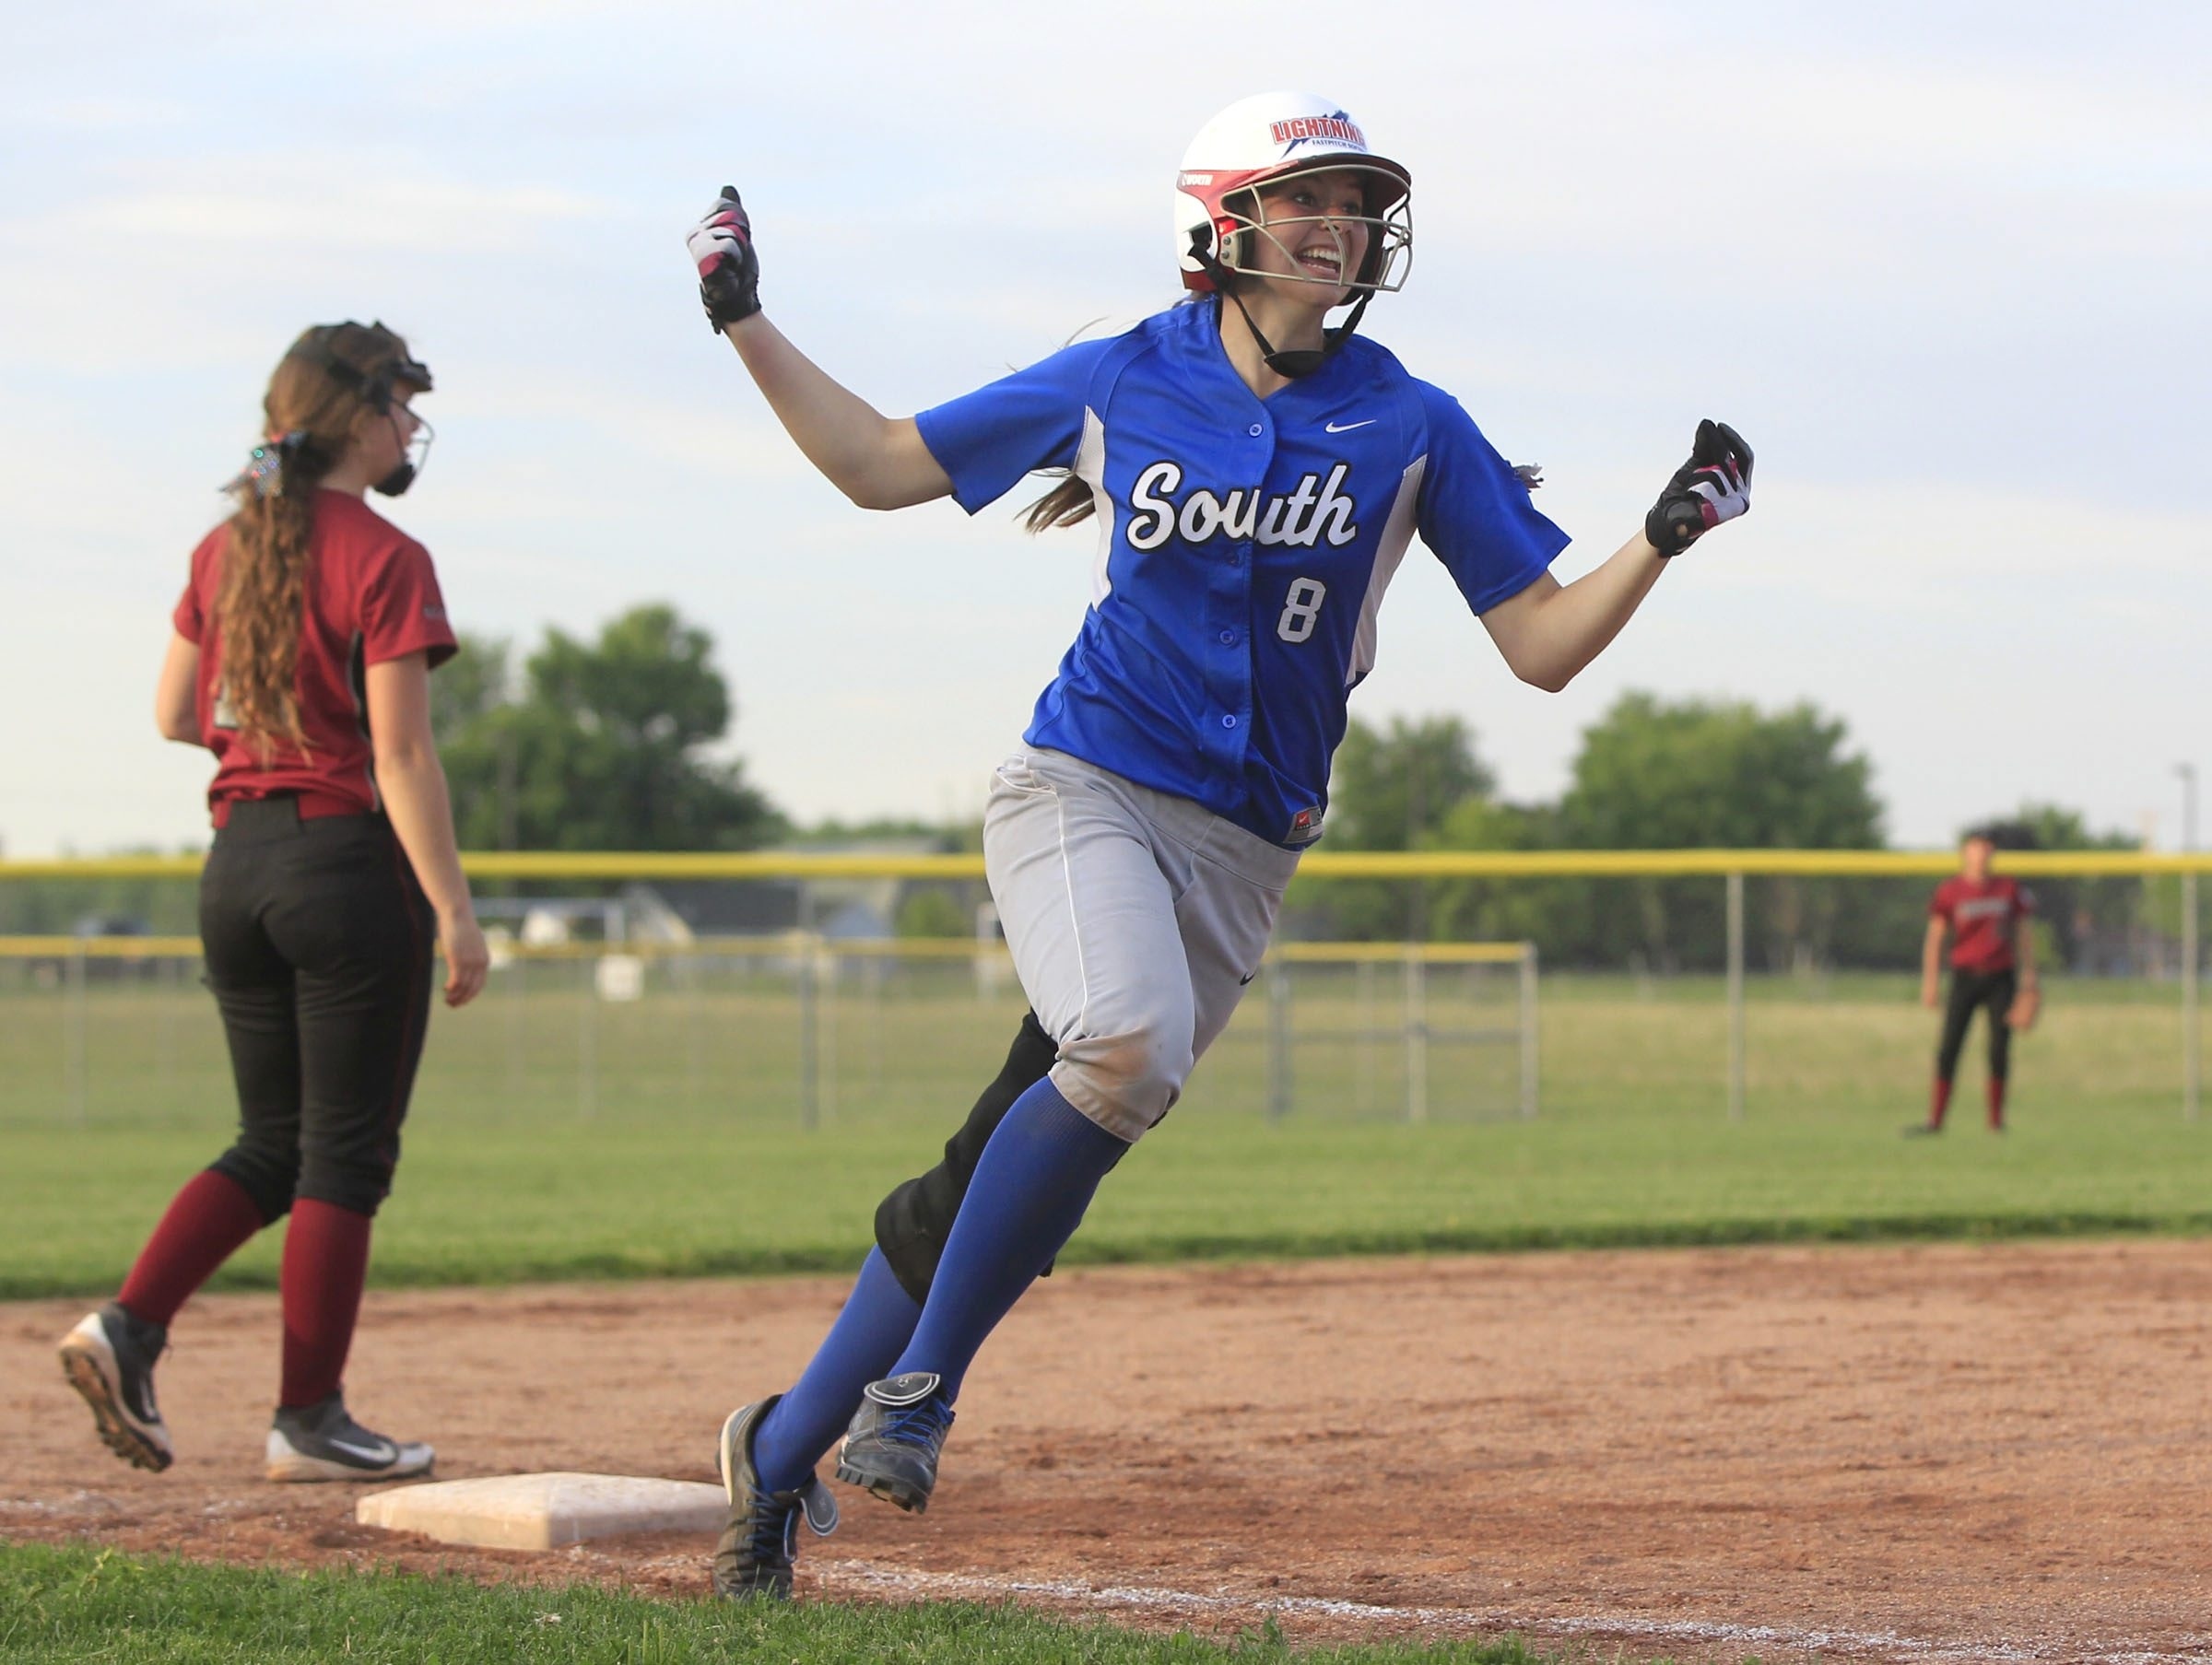 Williamsville South's Brianna Clark rounds third base after hitting a walk-off home run to beat Starpoint, 6-4, in the Class A championship game Wednesday. Additional photos on Page B7 and Picture Page, D8.